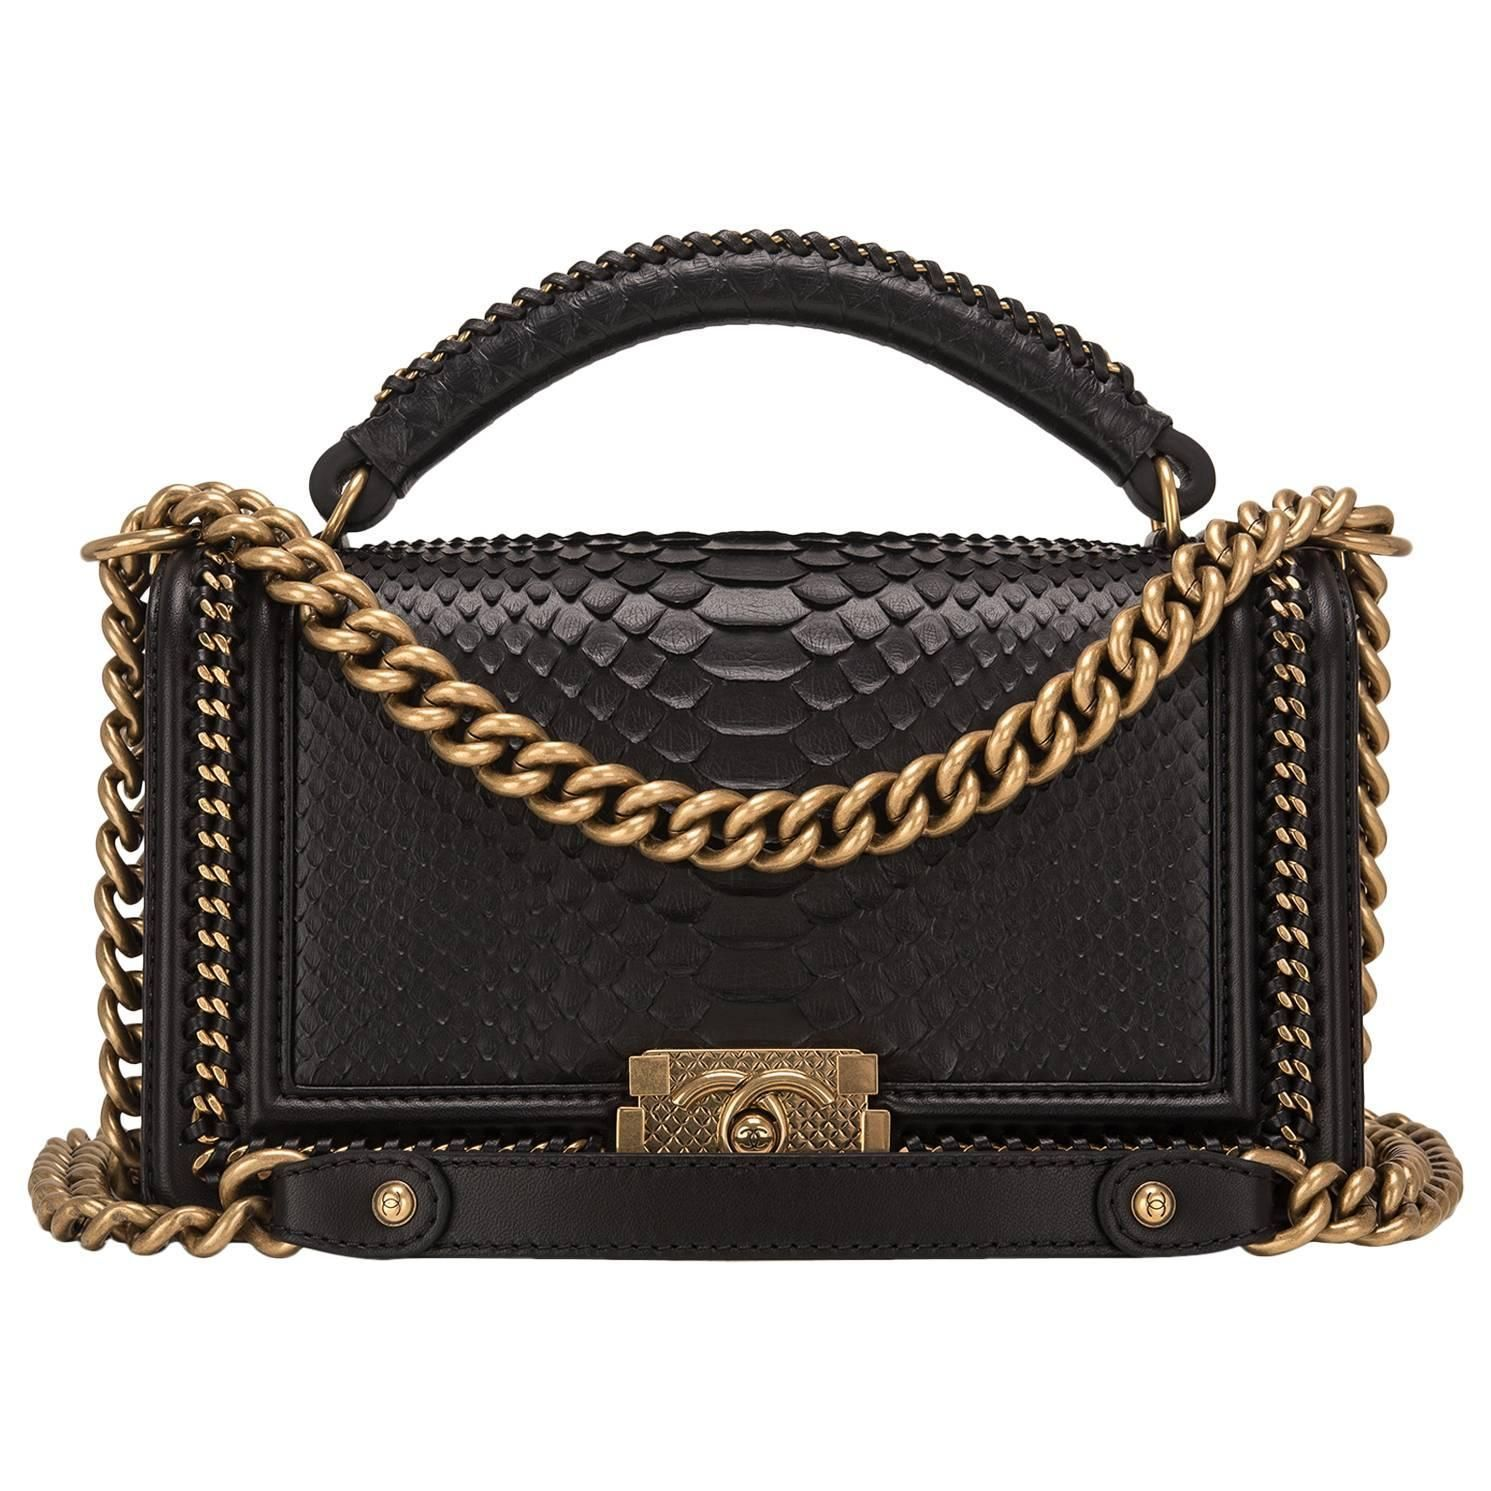 0fd5e185d3d Chanel Black Python Medium Boy Bag with Handle